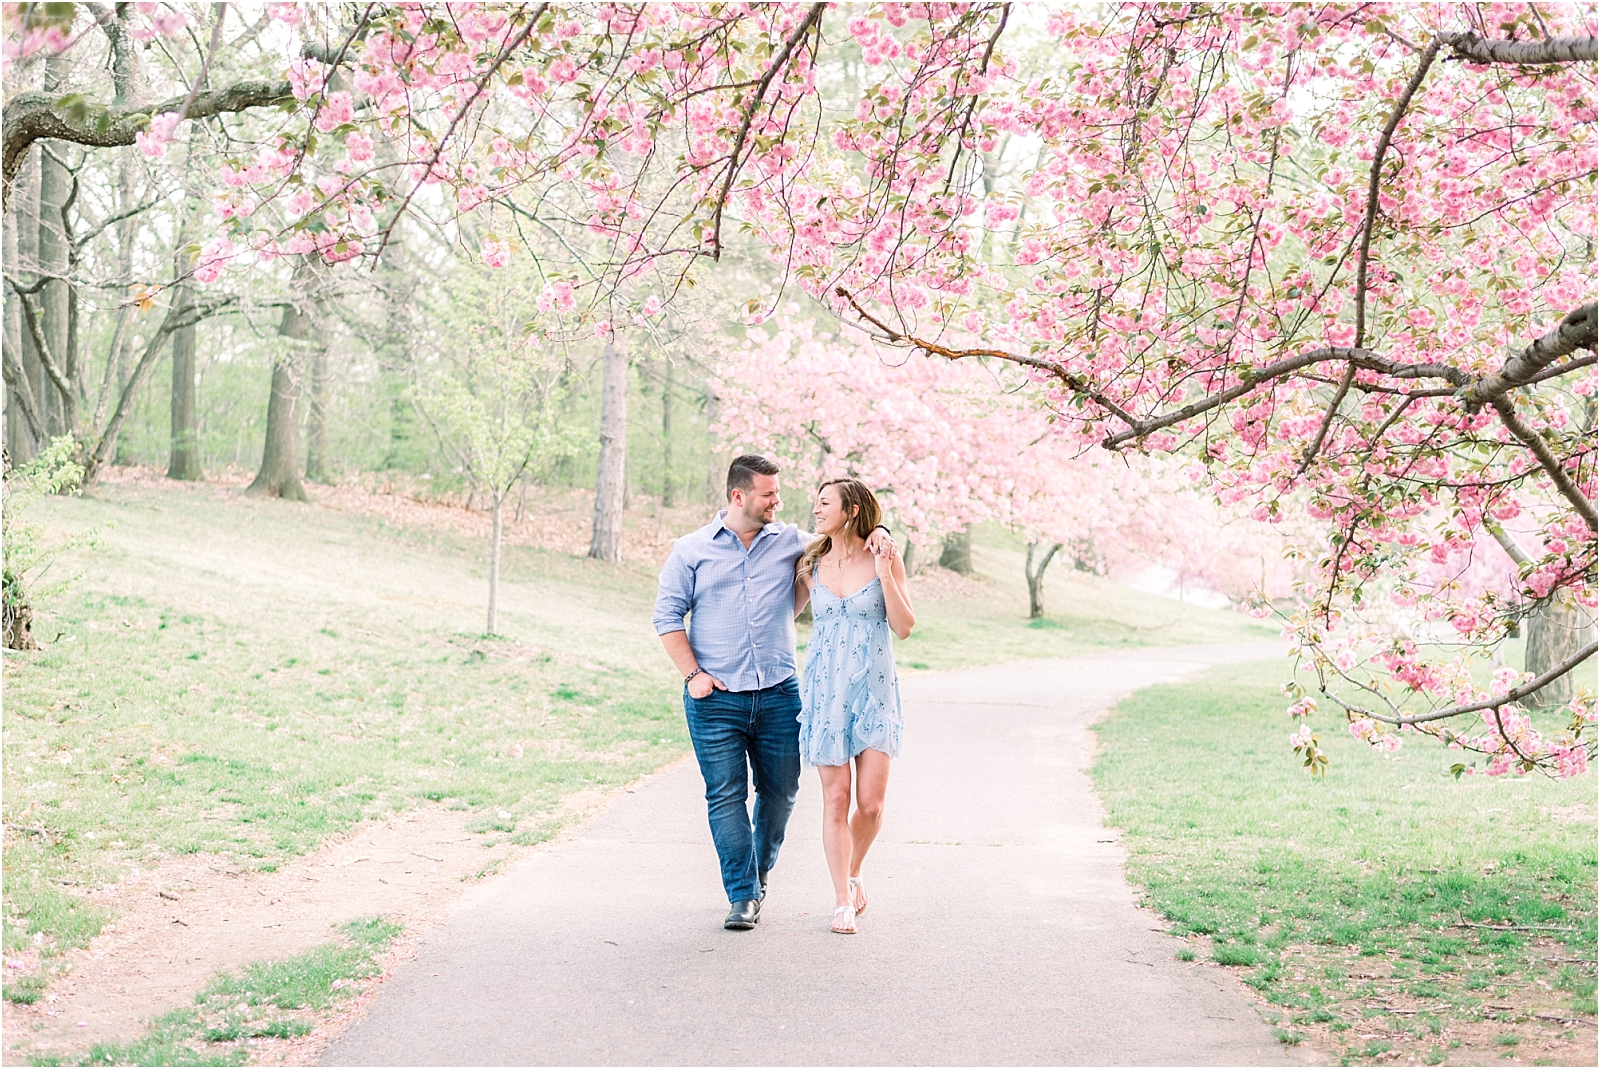 MT_branch_brook_park_engagement_session (1).jpg